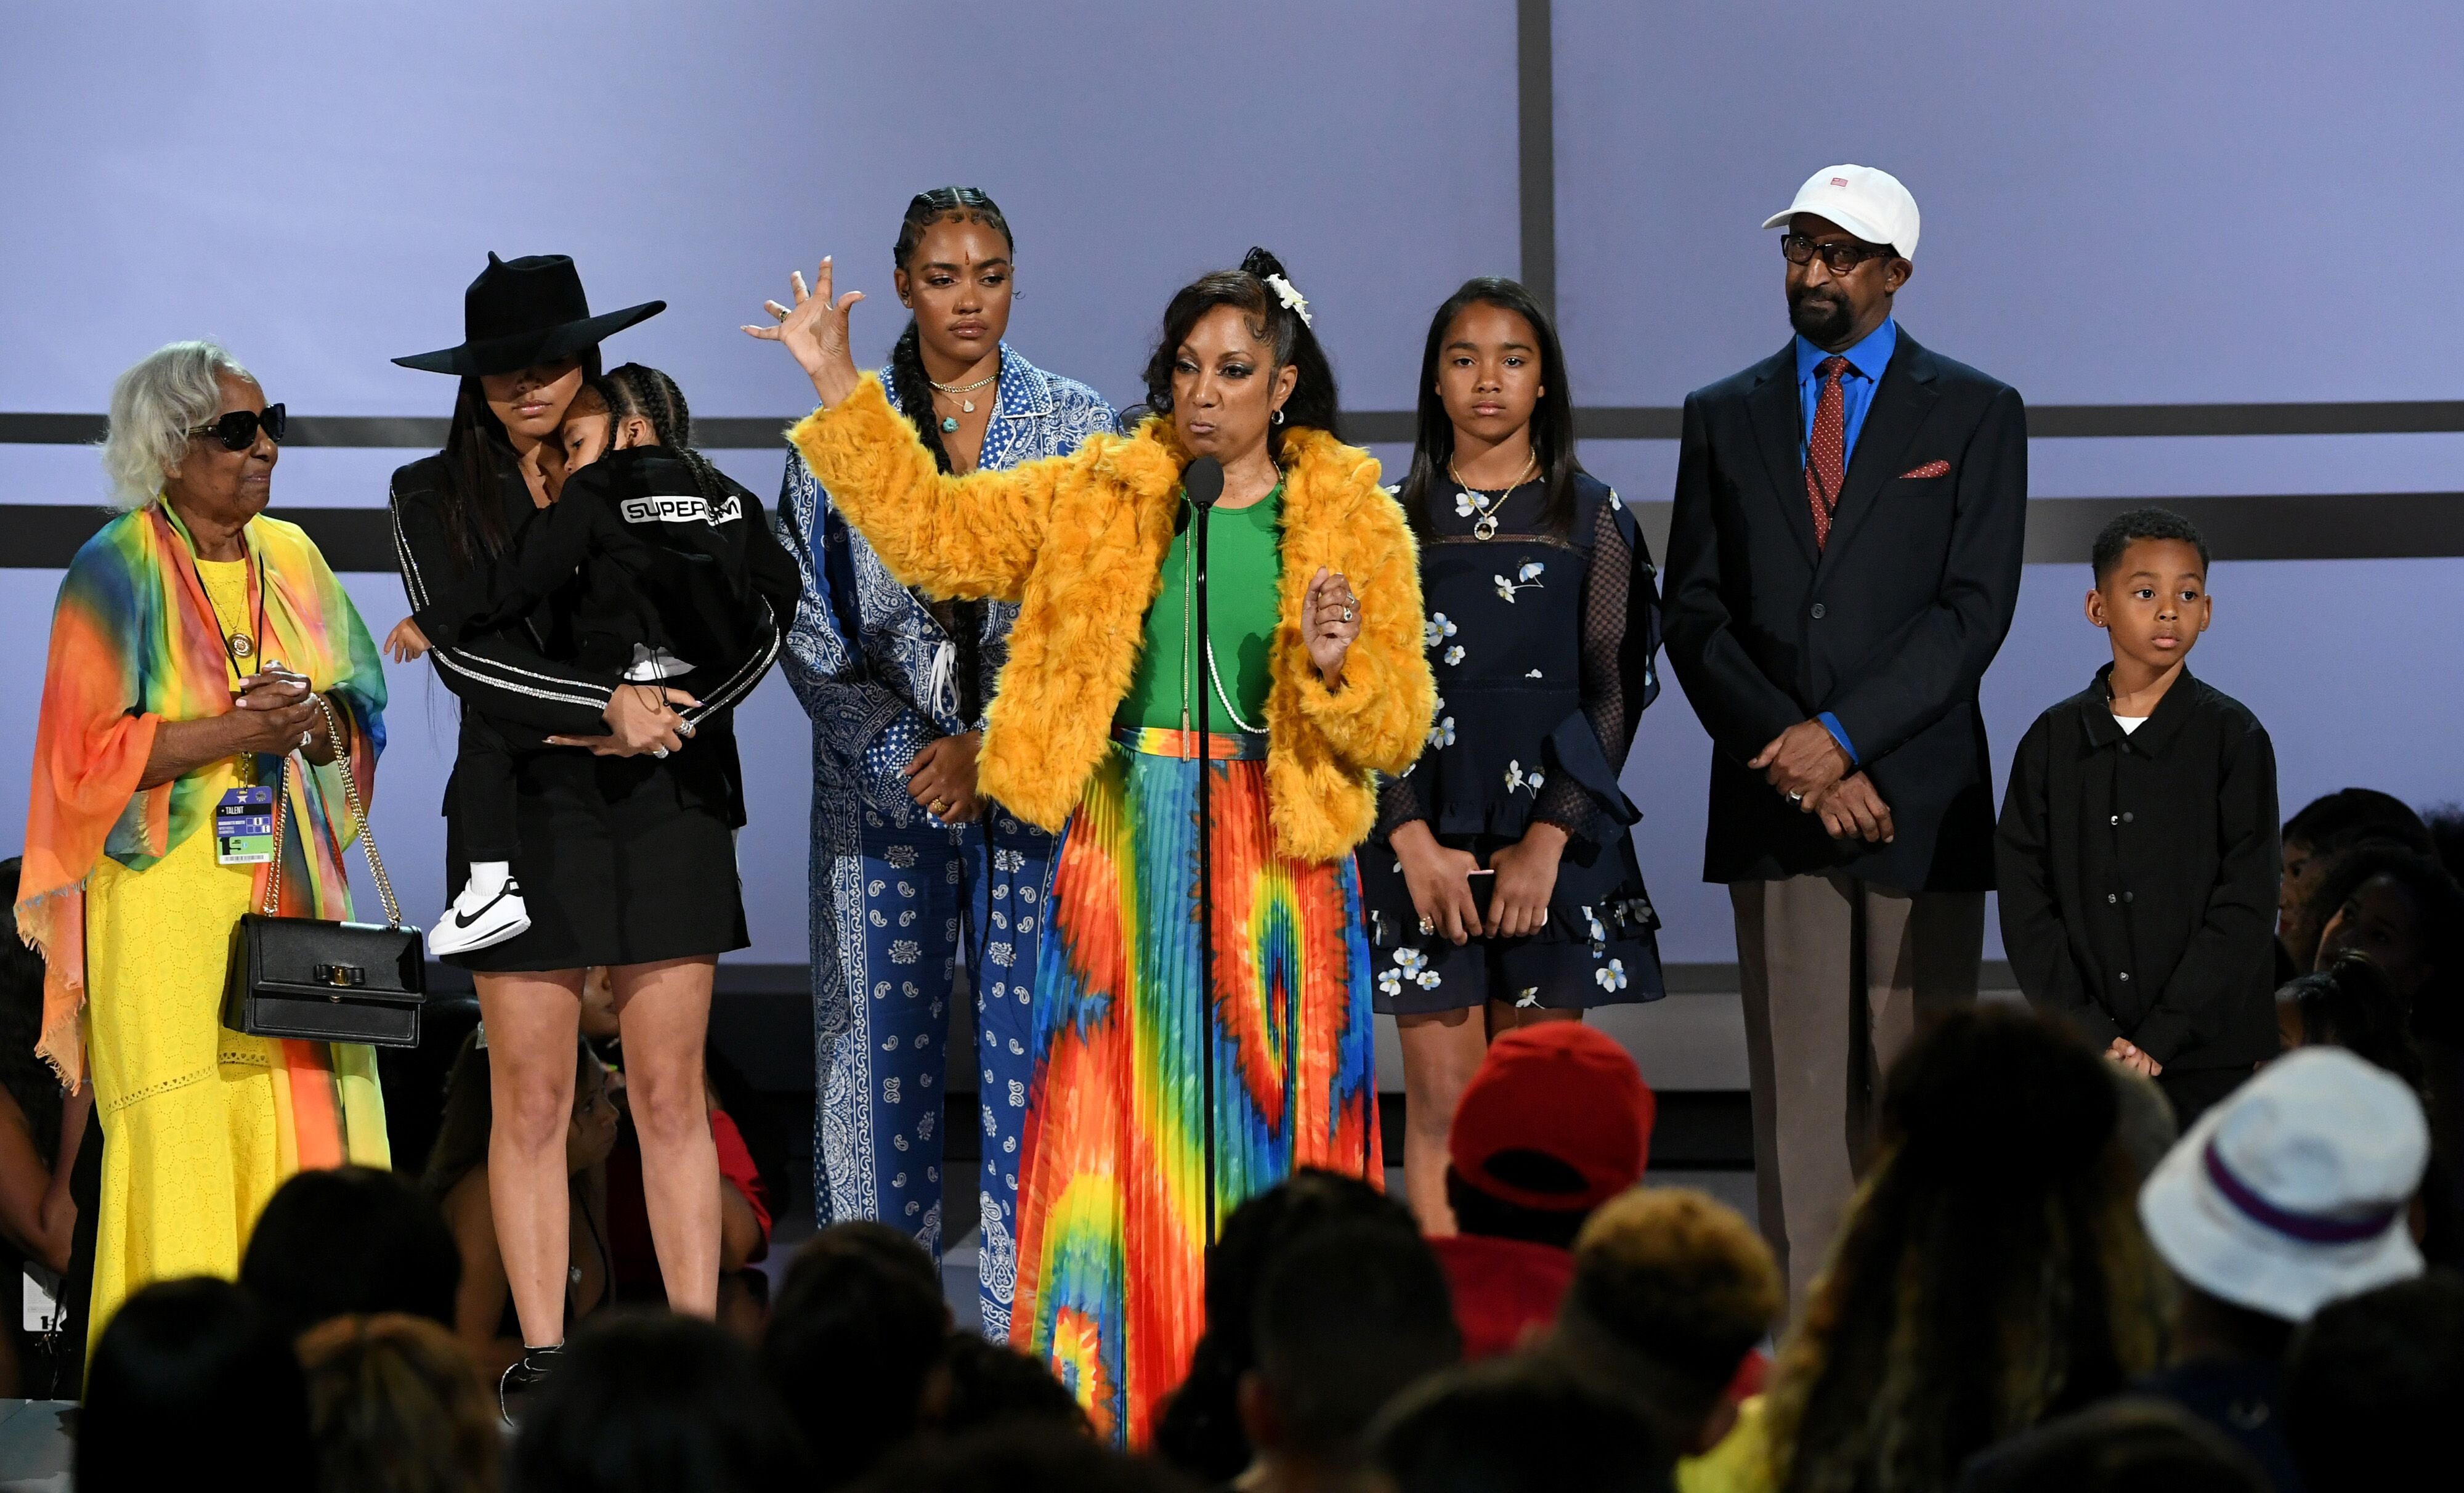 Lauren London and Nipsey Hussle's family during his memorial service at the Staples Center | Source: Getty Images/GlobalImagesUkraine